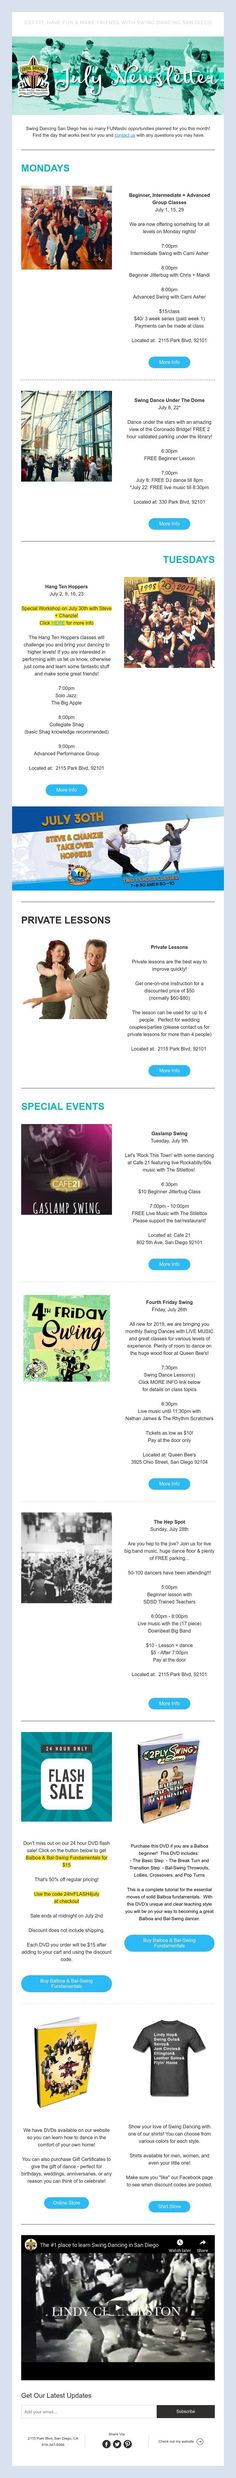 Swing Dancing San Diego has so many FUNtastic opportunities planned for you this month!